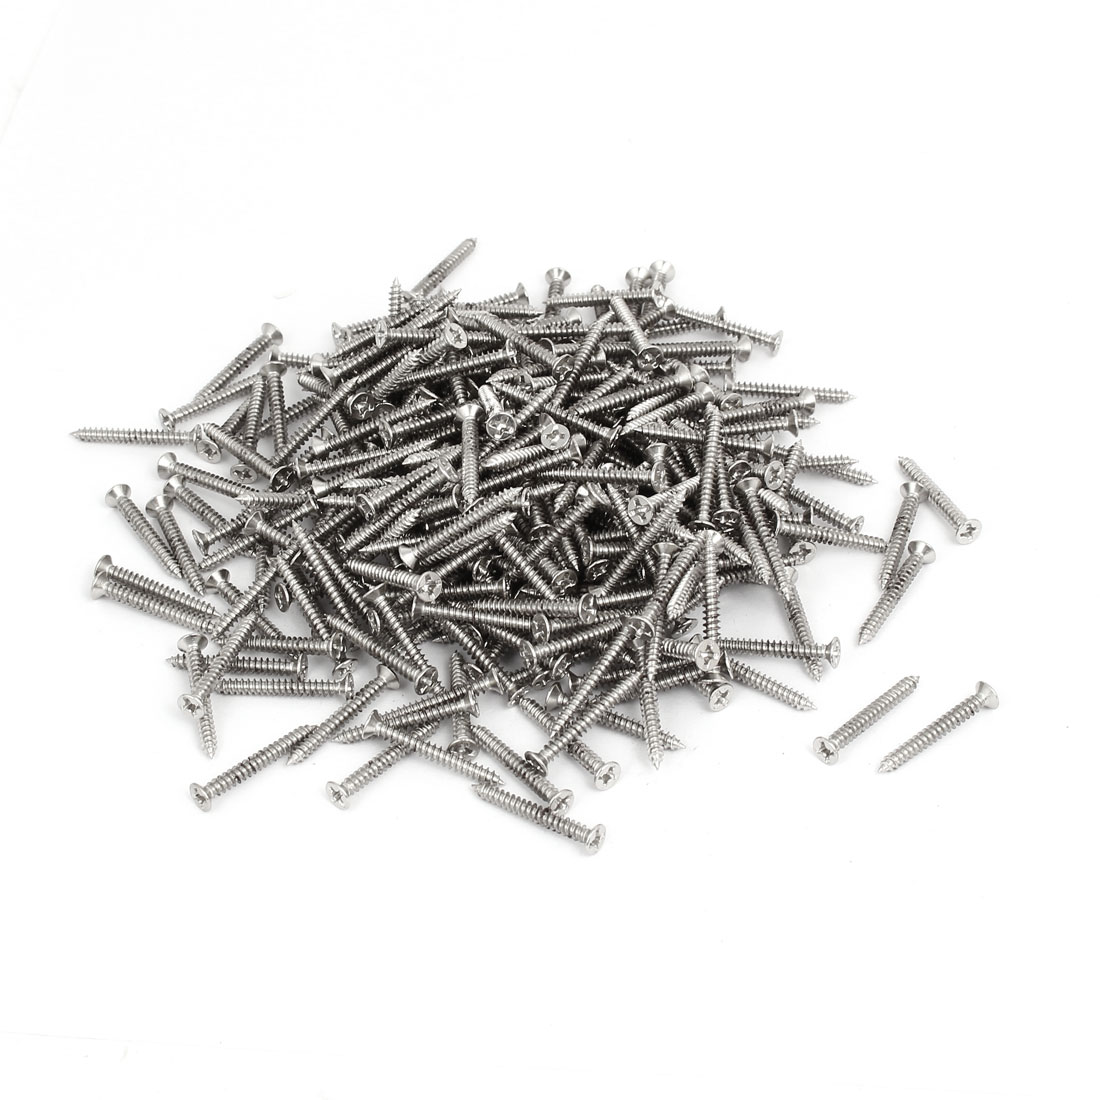 M3 x 25mm Phillips Flat Head Self Tapping Screws Silver Tone 500pcs